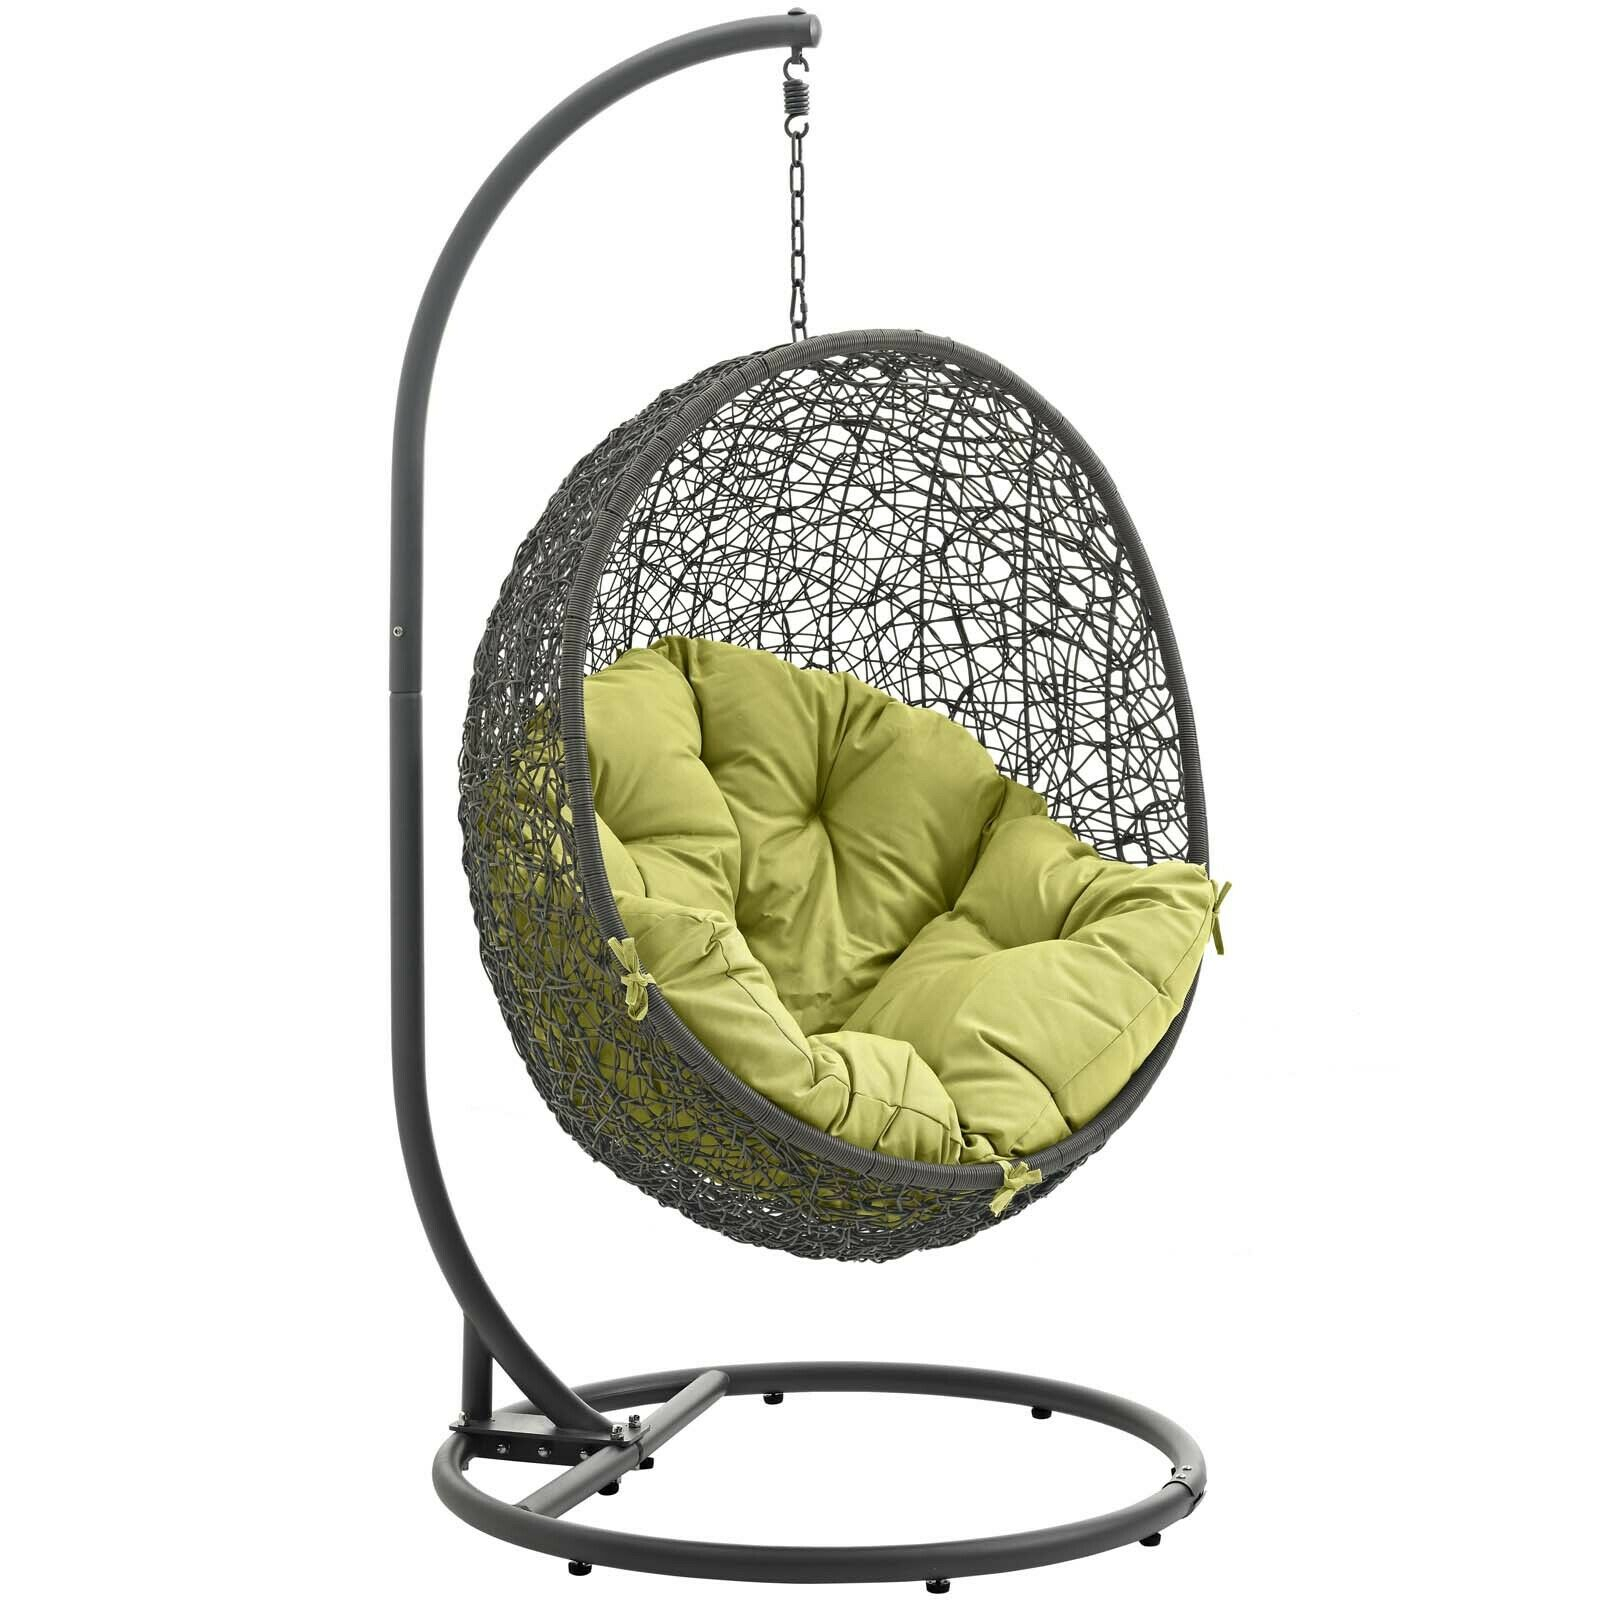 Details About Wicker Rattan Outdoor Patio Hanging Swing Porch Chair W/ Stand In Gray Peridot In Wicker Glider Outdoor Porch Swings With Stand (View 23 of 25)